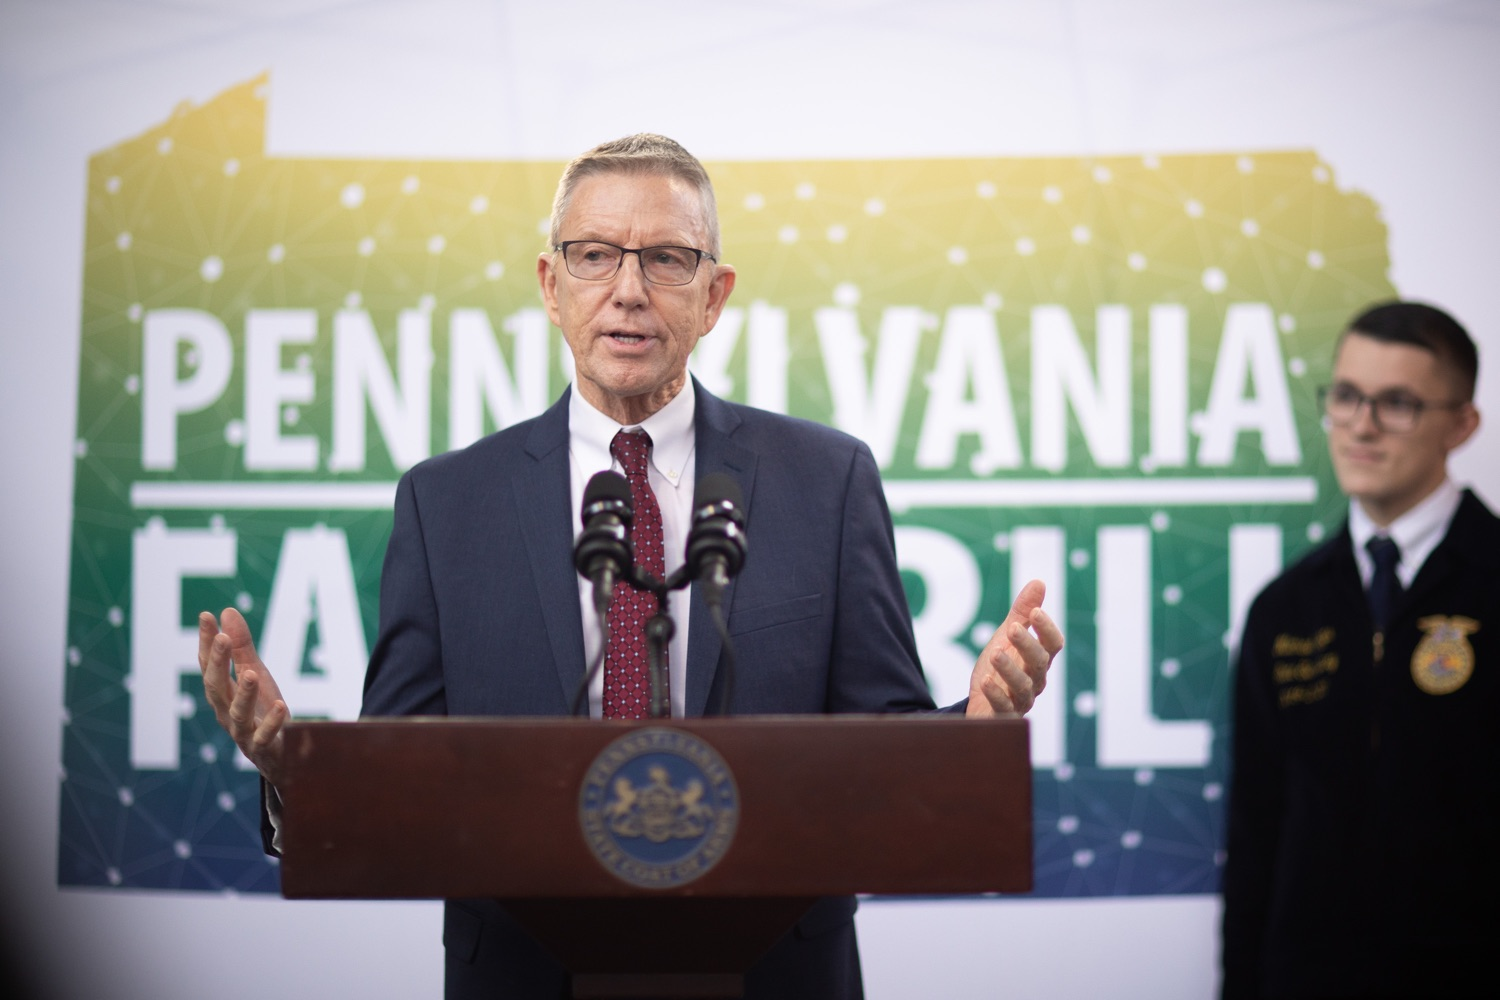 """<a href=""""http://filesource.abacast.com/commonwealthofpa/photo/17649_agric_youth_grant_farm_bill_dz_005.jpg"""" target=""""_blank"""">⇣Download Photo<br></a>Education Executive Deputy David Volkman speaking at the announcement. Governor Tom Wolf today announced the approval of $500,000 in Ag and Youth Grants to fund 55 projects that will improve access to agriculture education in the commonwealth, with a goal of addressing the looming 75,000 workforce deficit Pennsylvanias agriculture industry faces in the coming decade. Harrisburg, PA  January 6, 2020"""